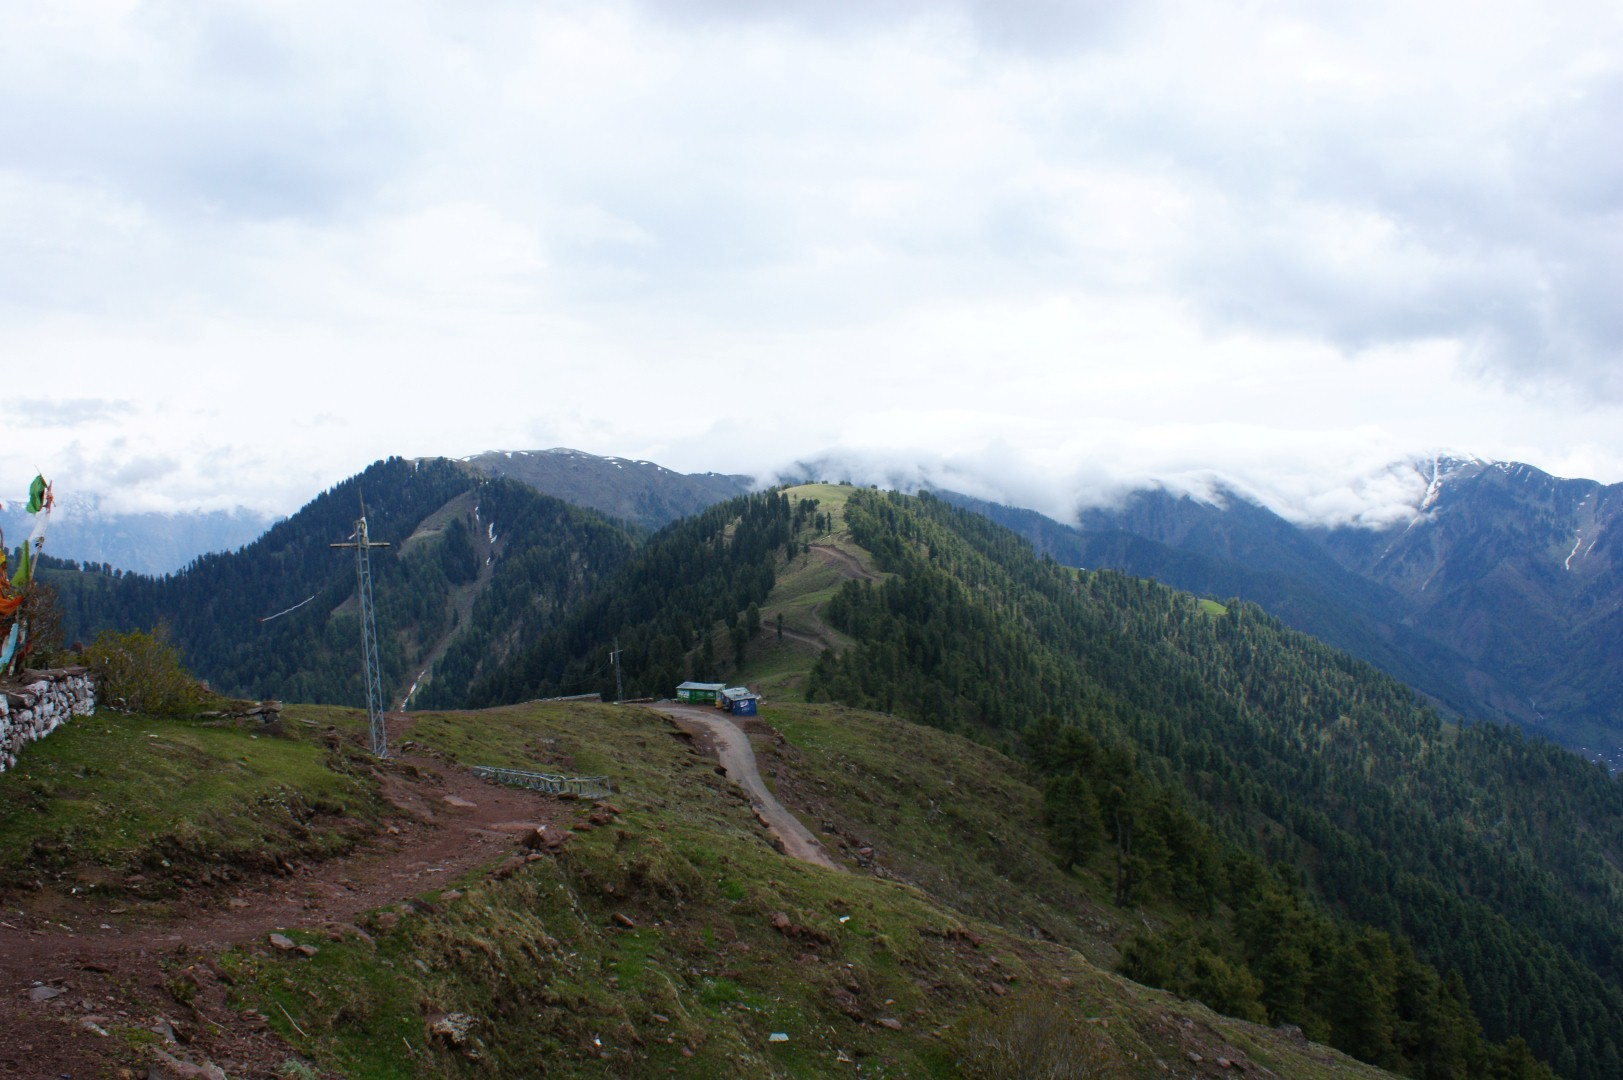 Trip to Muzaffarabad & Pir Channasi April-May 2012-nomi700 - 7537133370 6d55d81d03 o